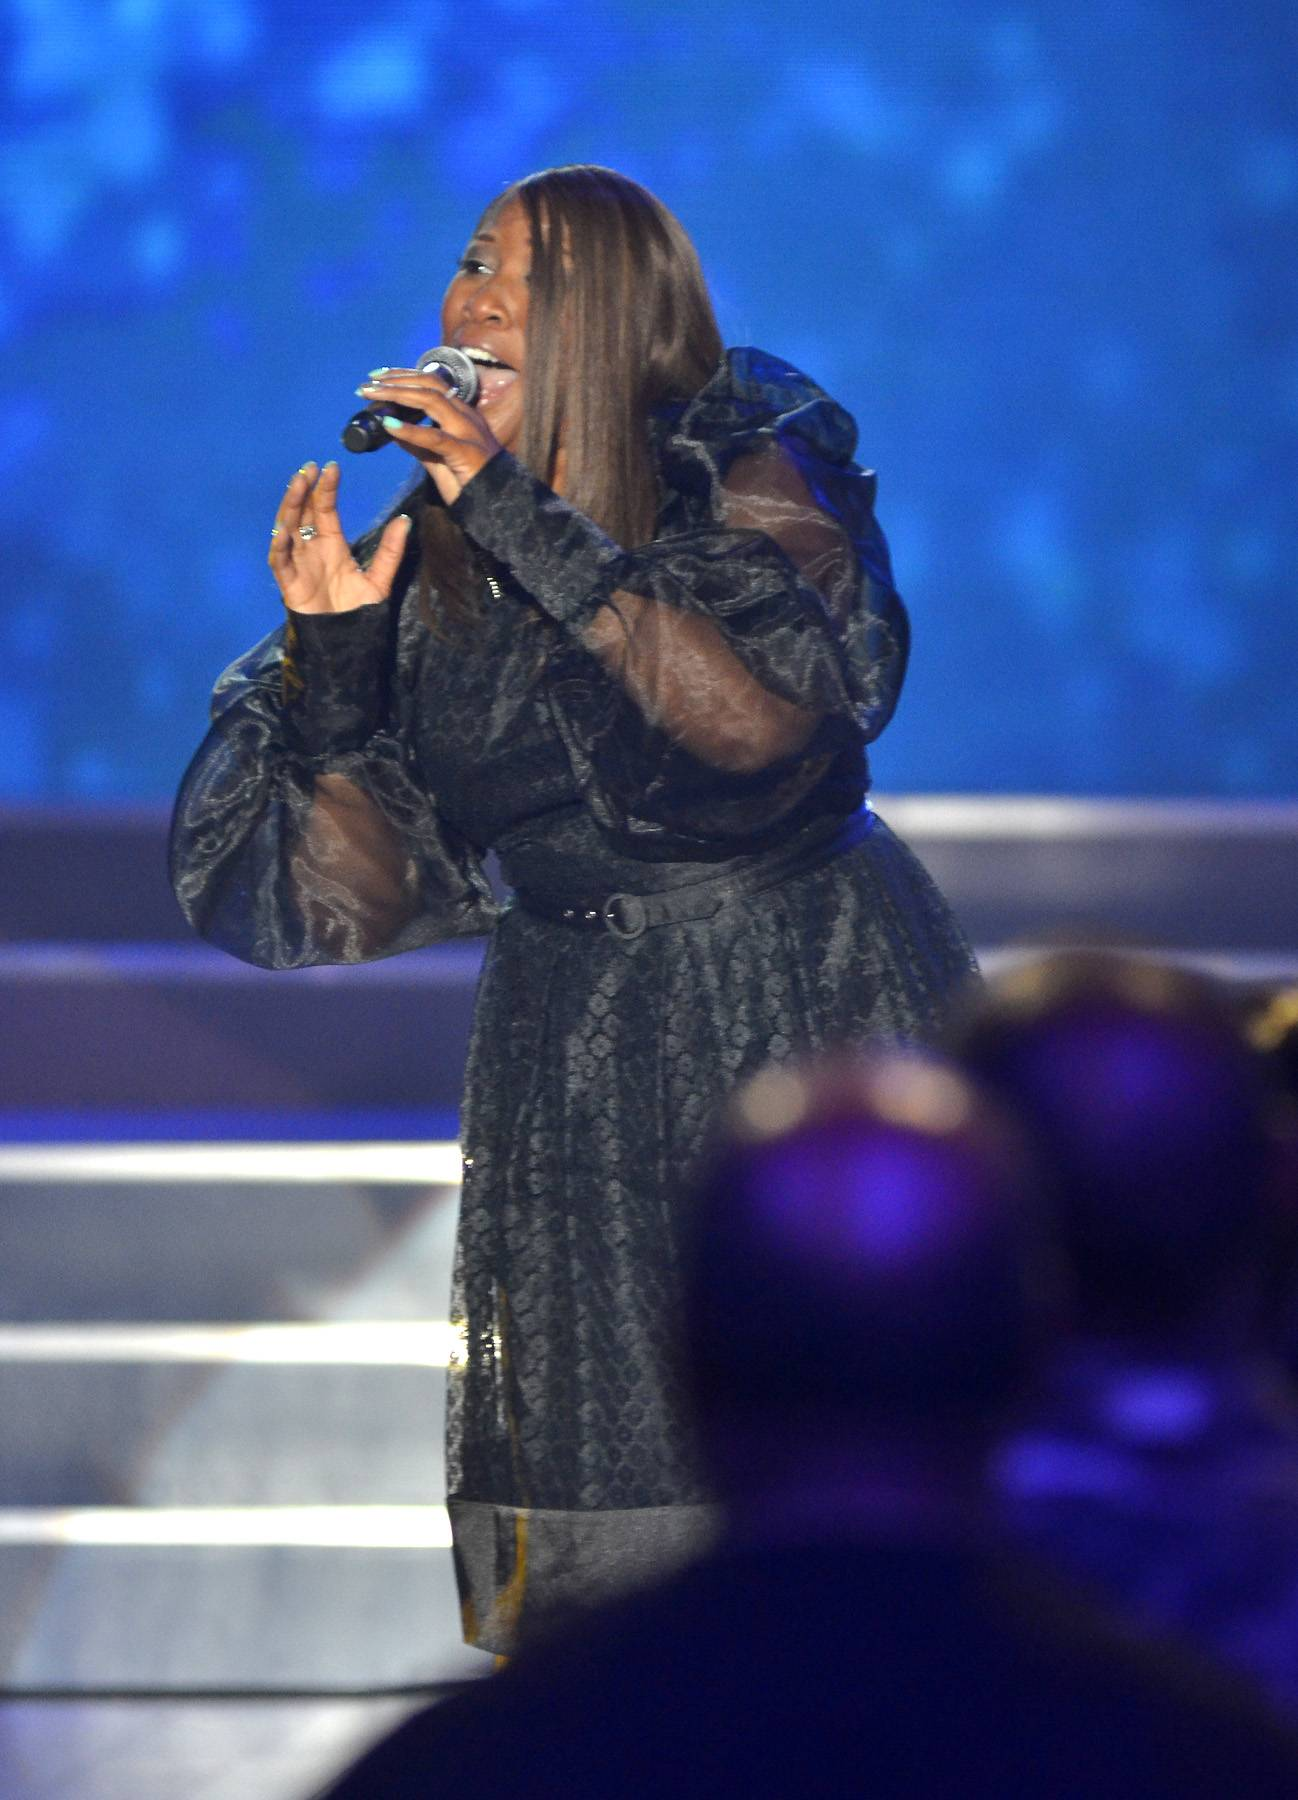 Nancy Jackson Johnson Performance - Nancy Jackson Johnson comes back after 14 years to perform during the taping of BET's Bobby Jones Gospel at BET Studios on August 3, 2014, in Washington, D.C.(Photo: Kris Connor/Getty Images for BET Networks)